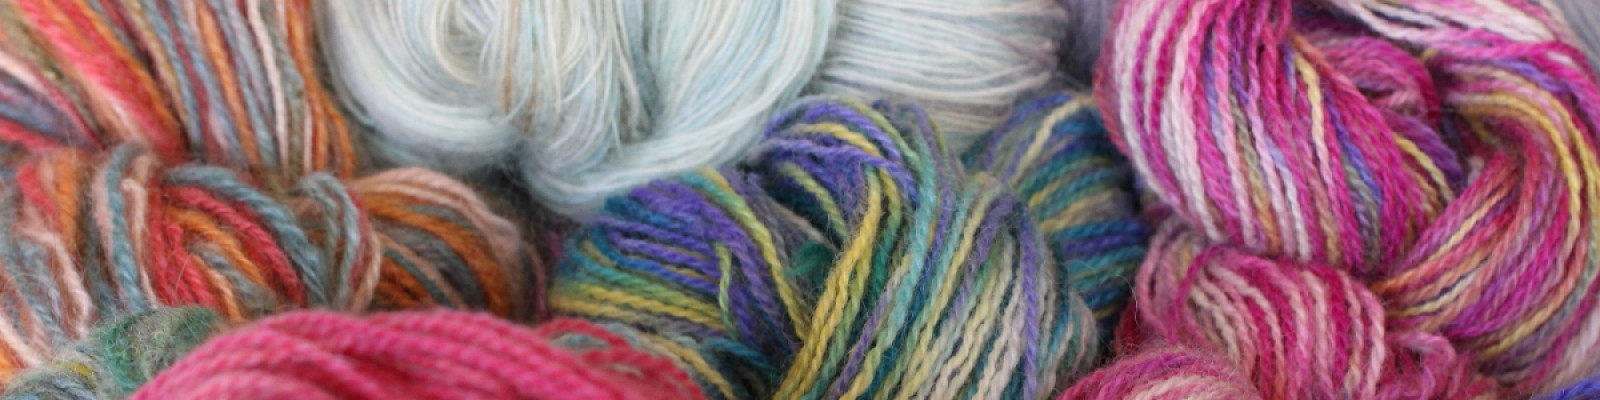 Multi Colored Hand Dyed Handspun Yarns